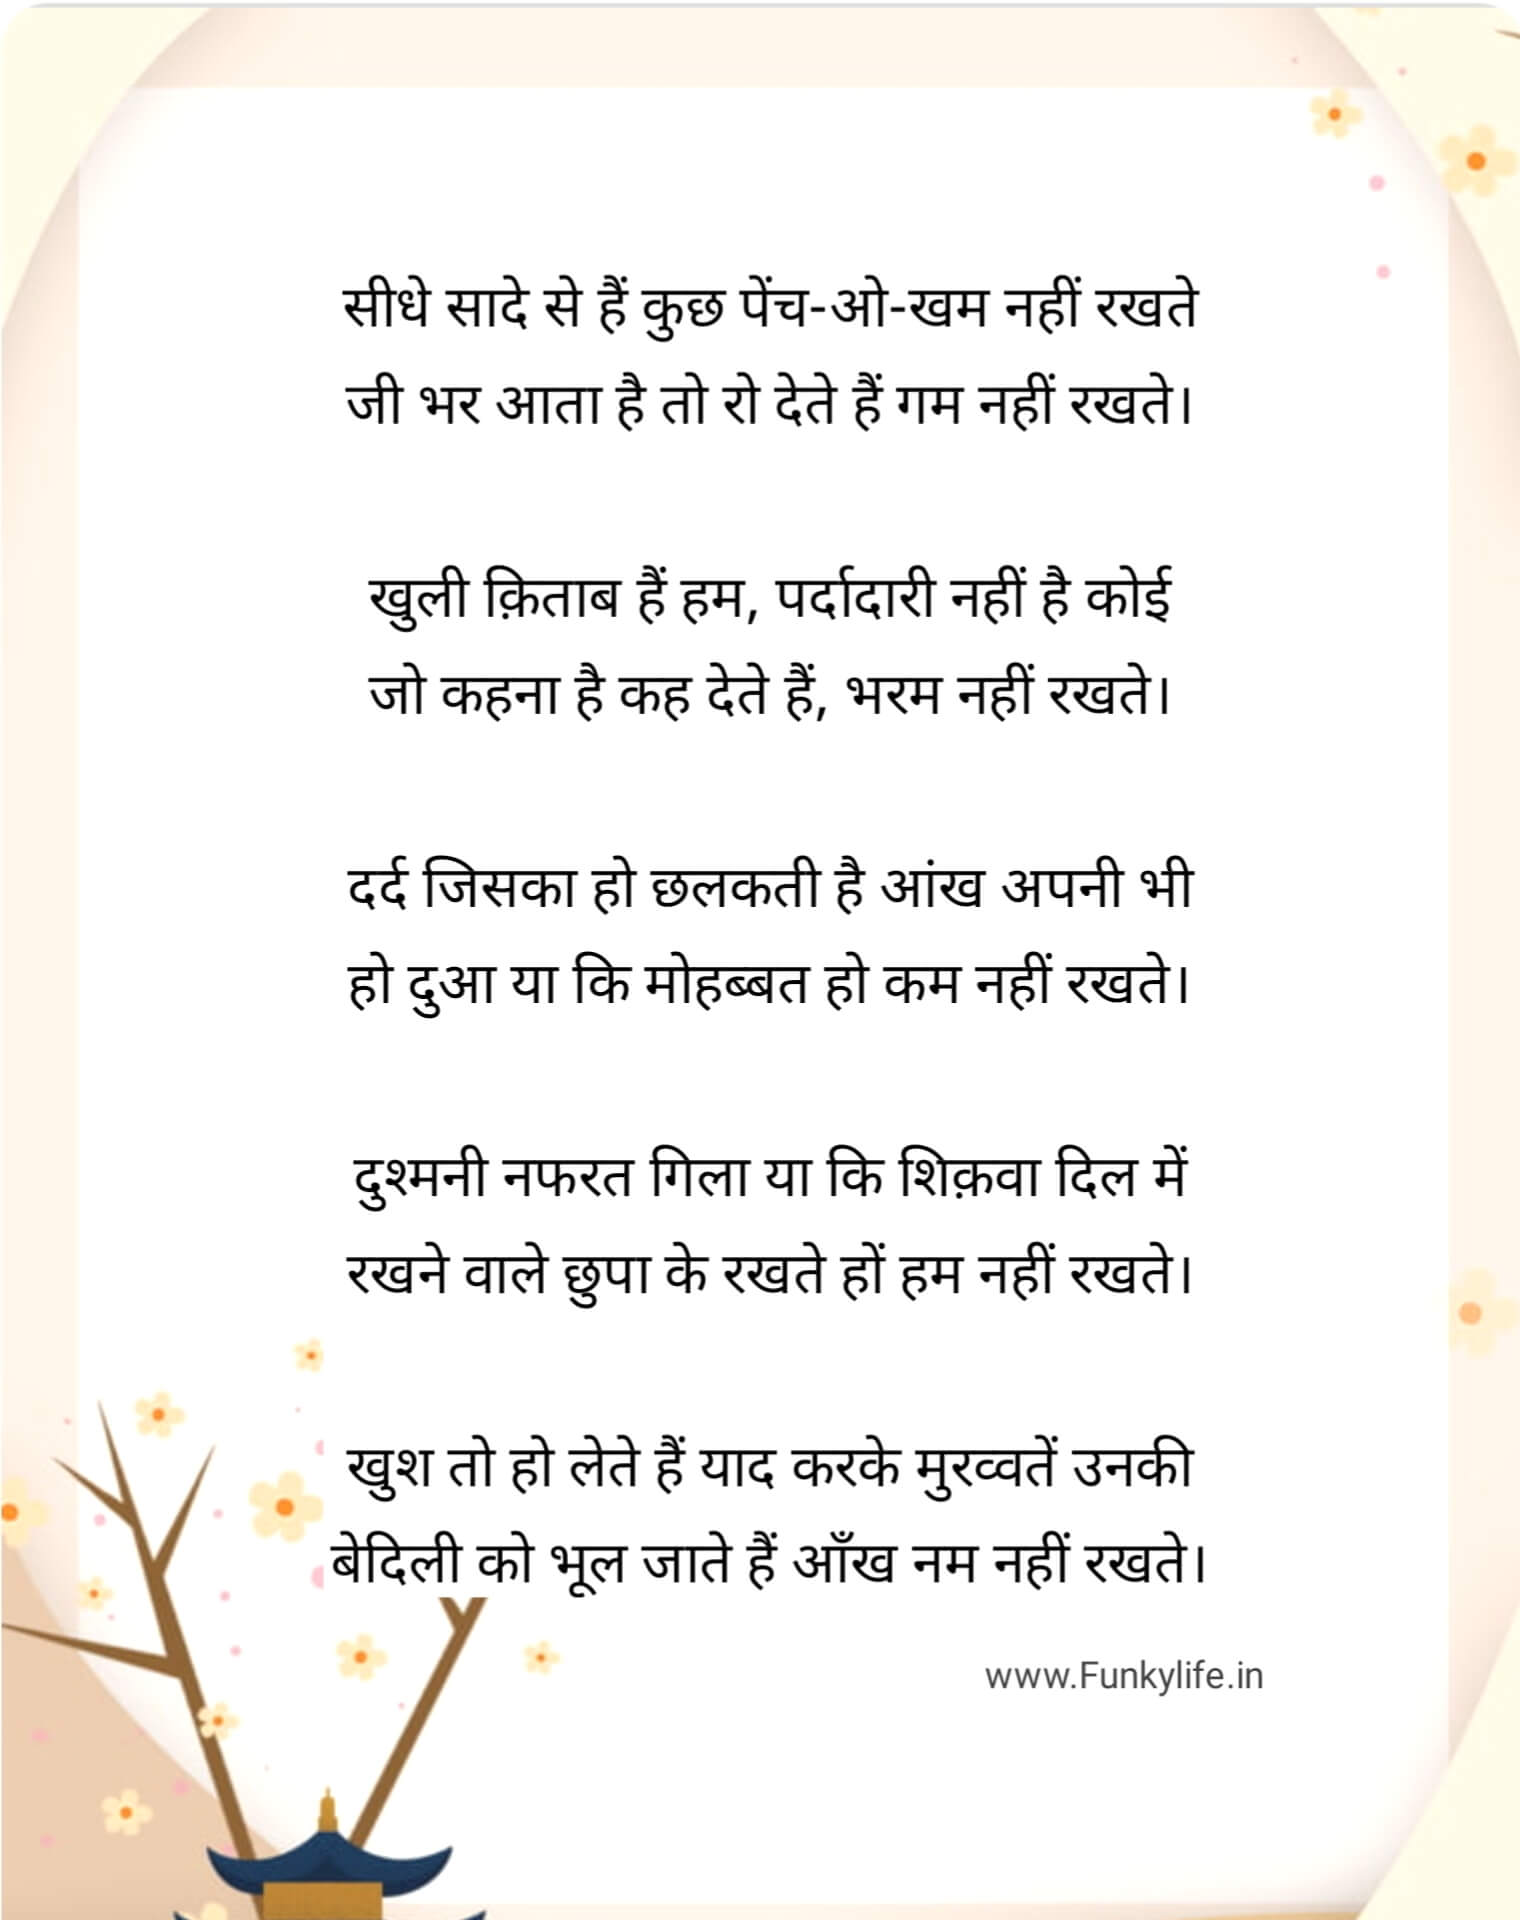 Hindi Poetry on life values #7